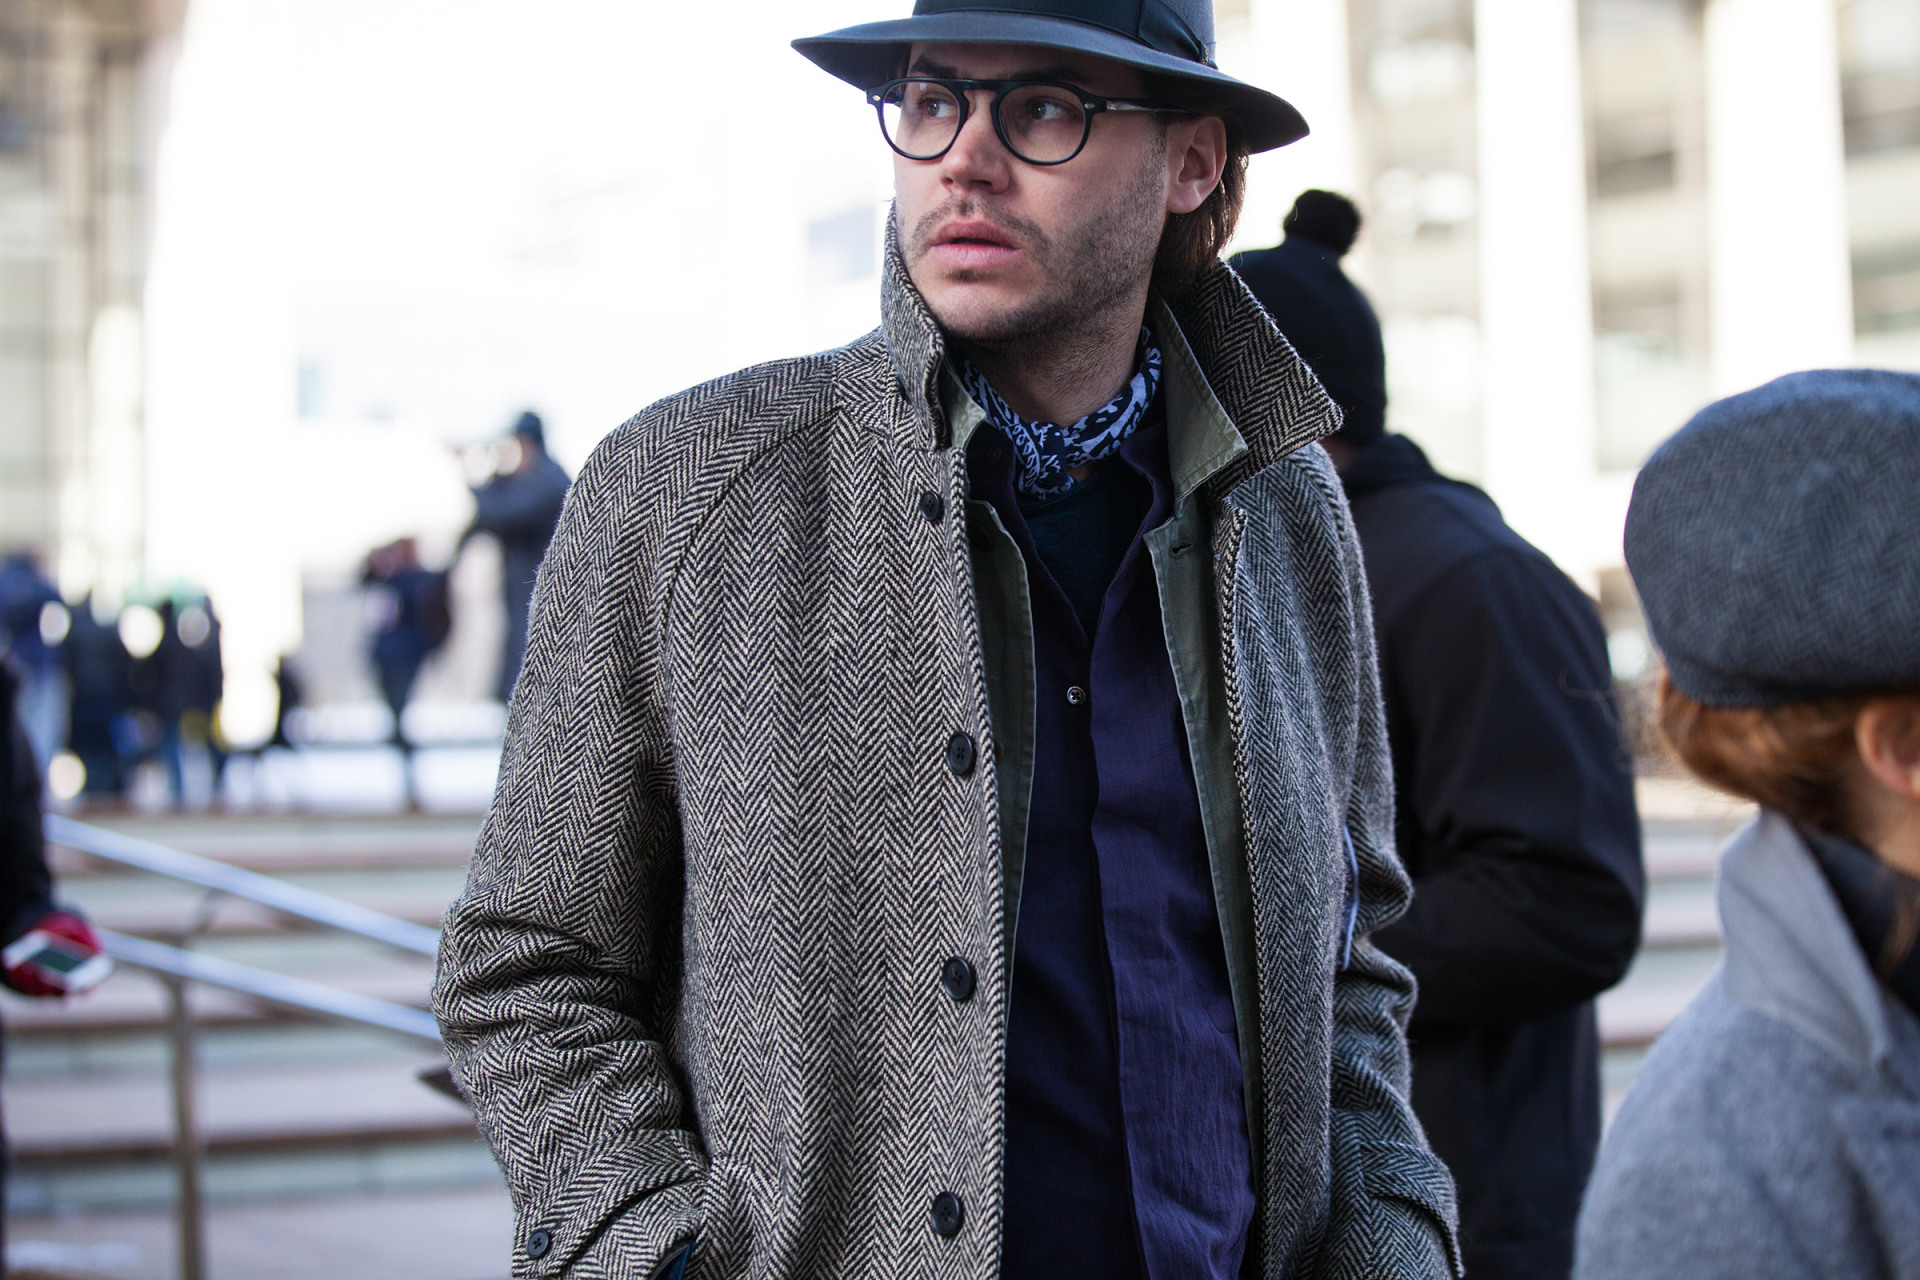 new-york-fashion-week-fall-winter-2014-street-style-2-03-1920x1280